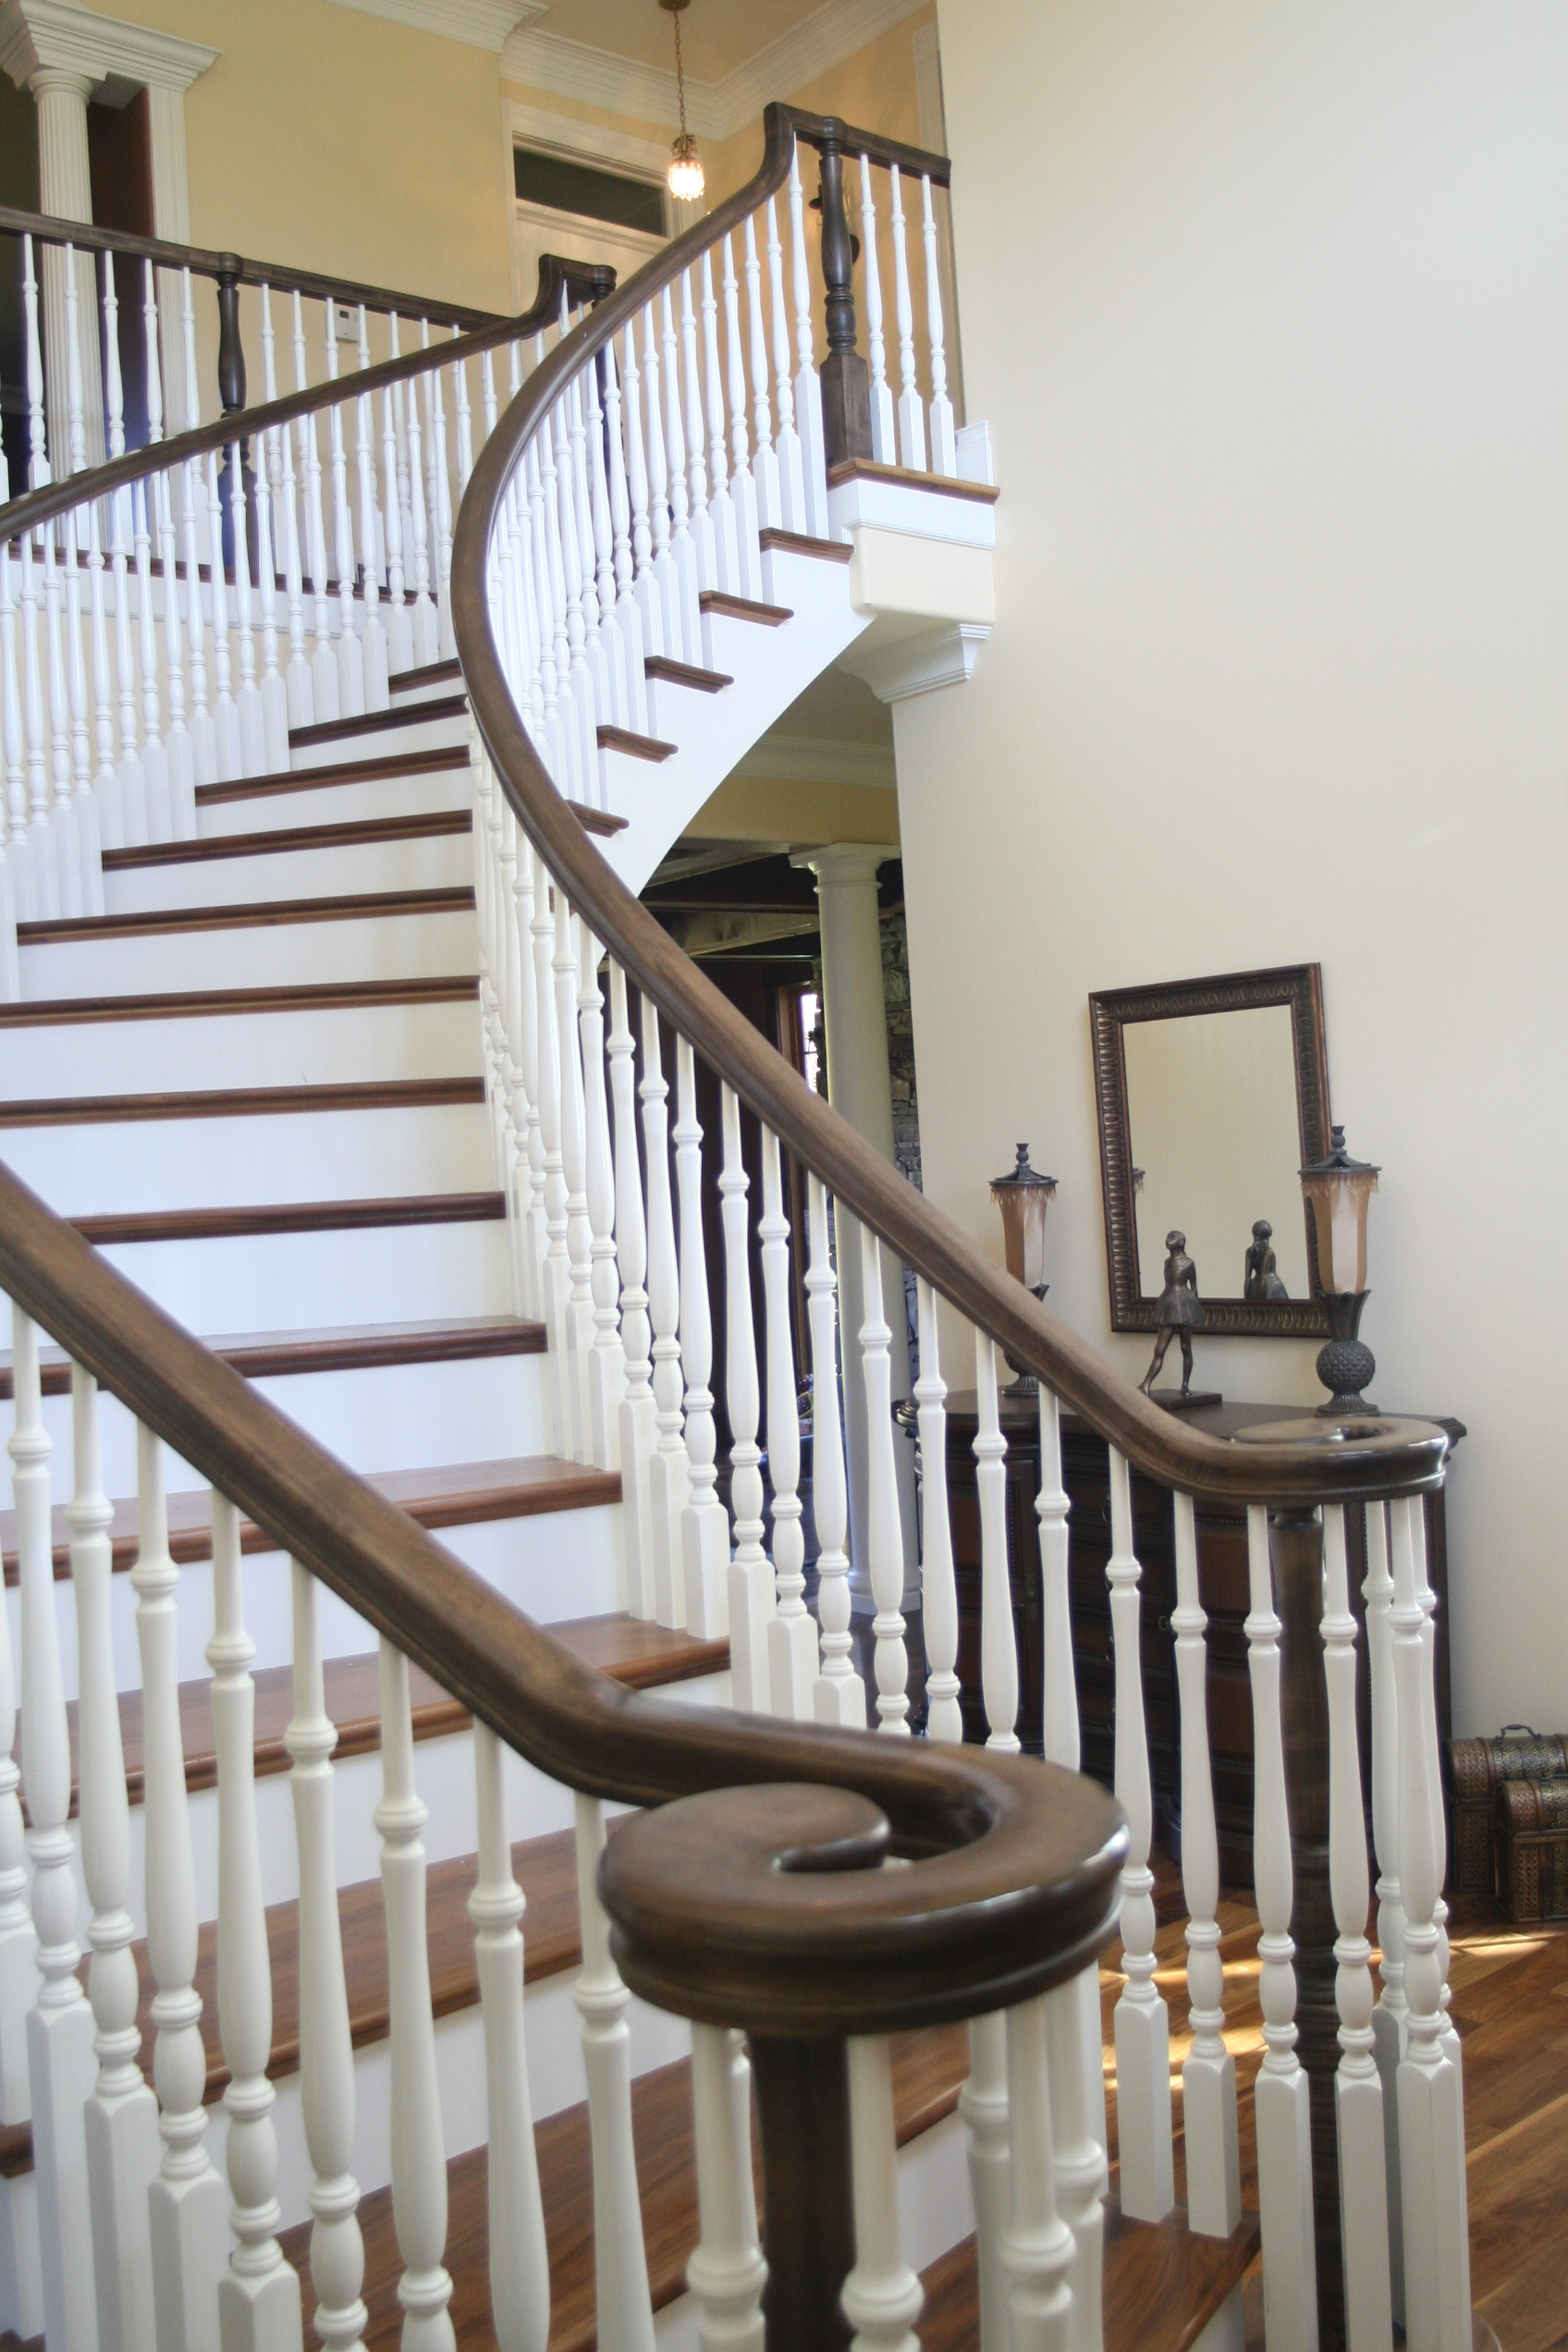 bennett-stair-company-home-in-wood-stairs-and-interior-images-interior-stairs